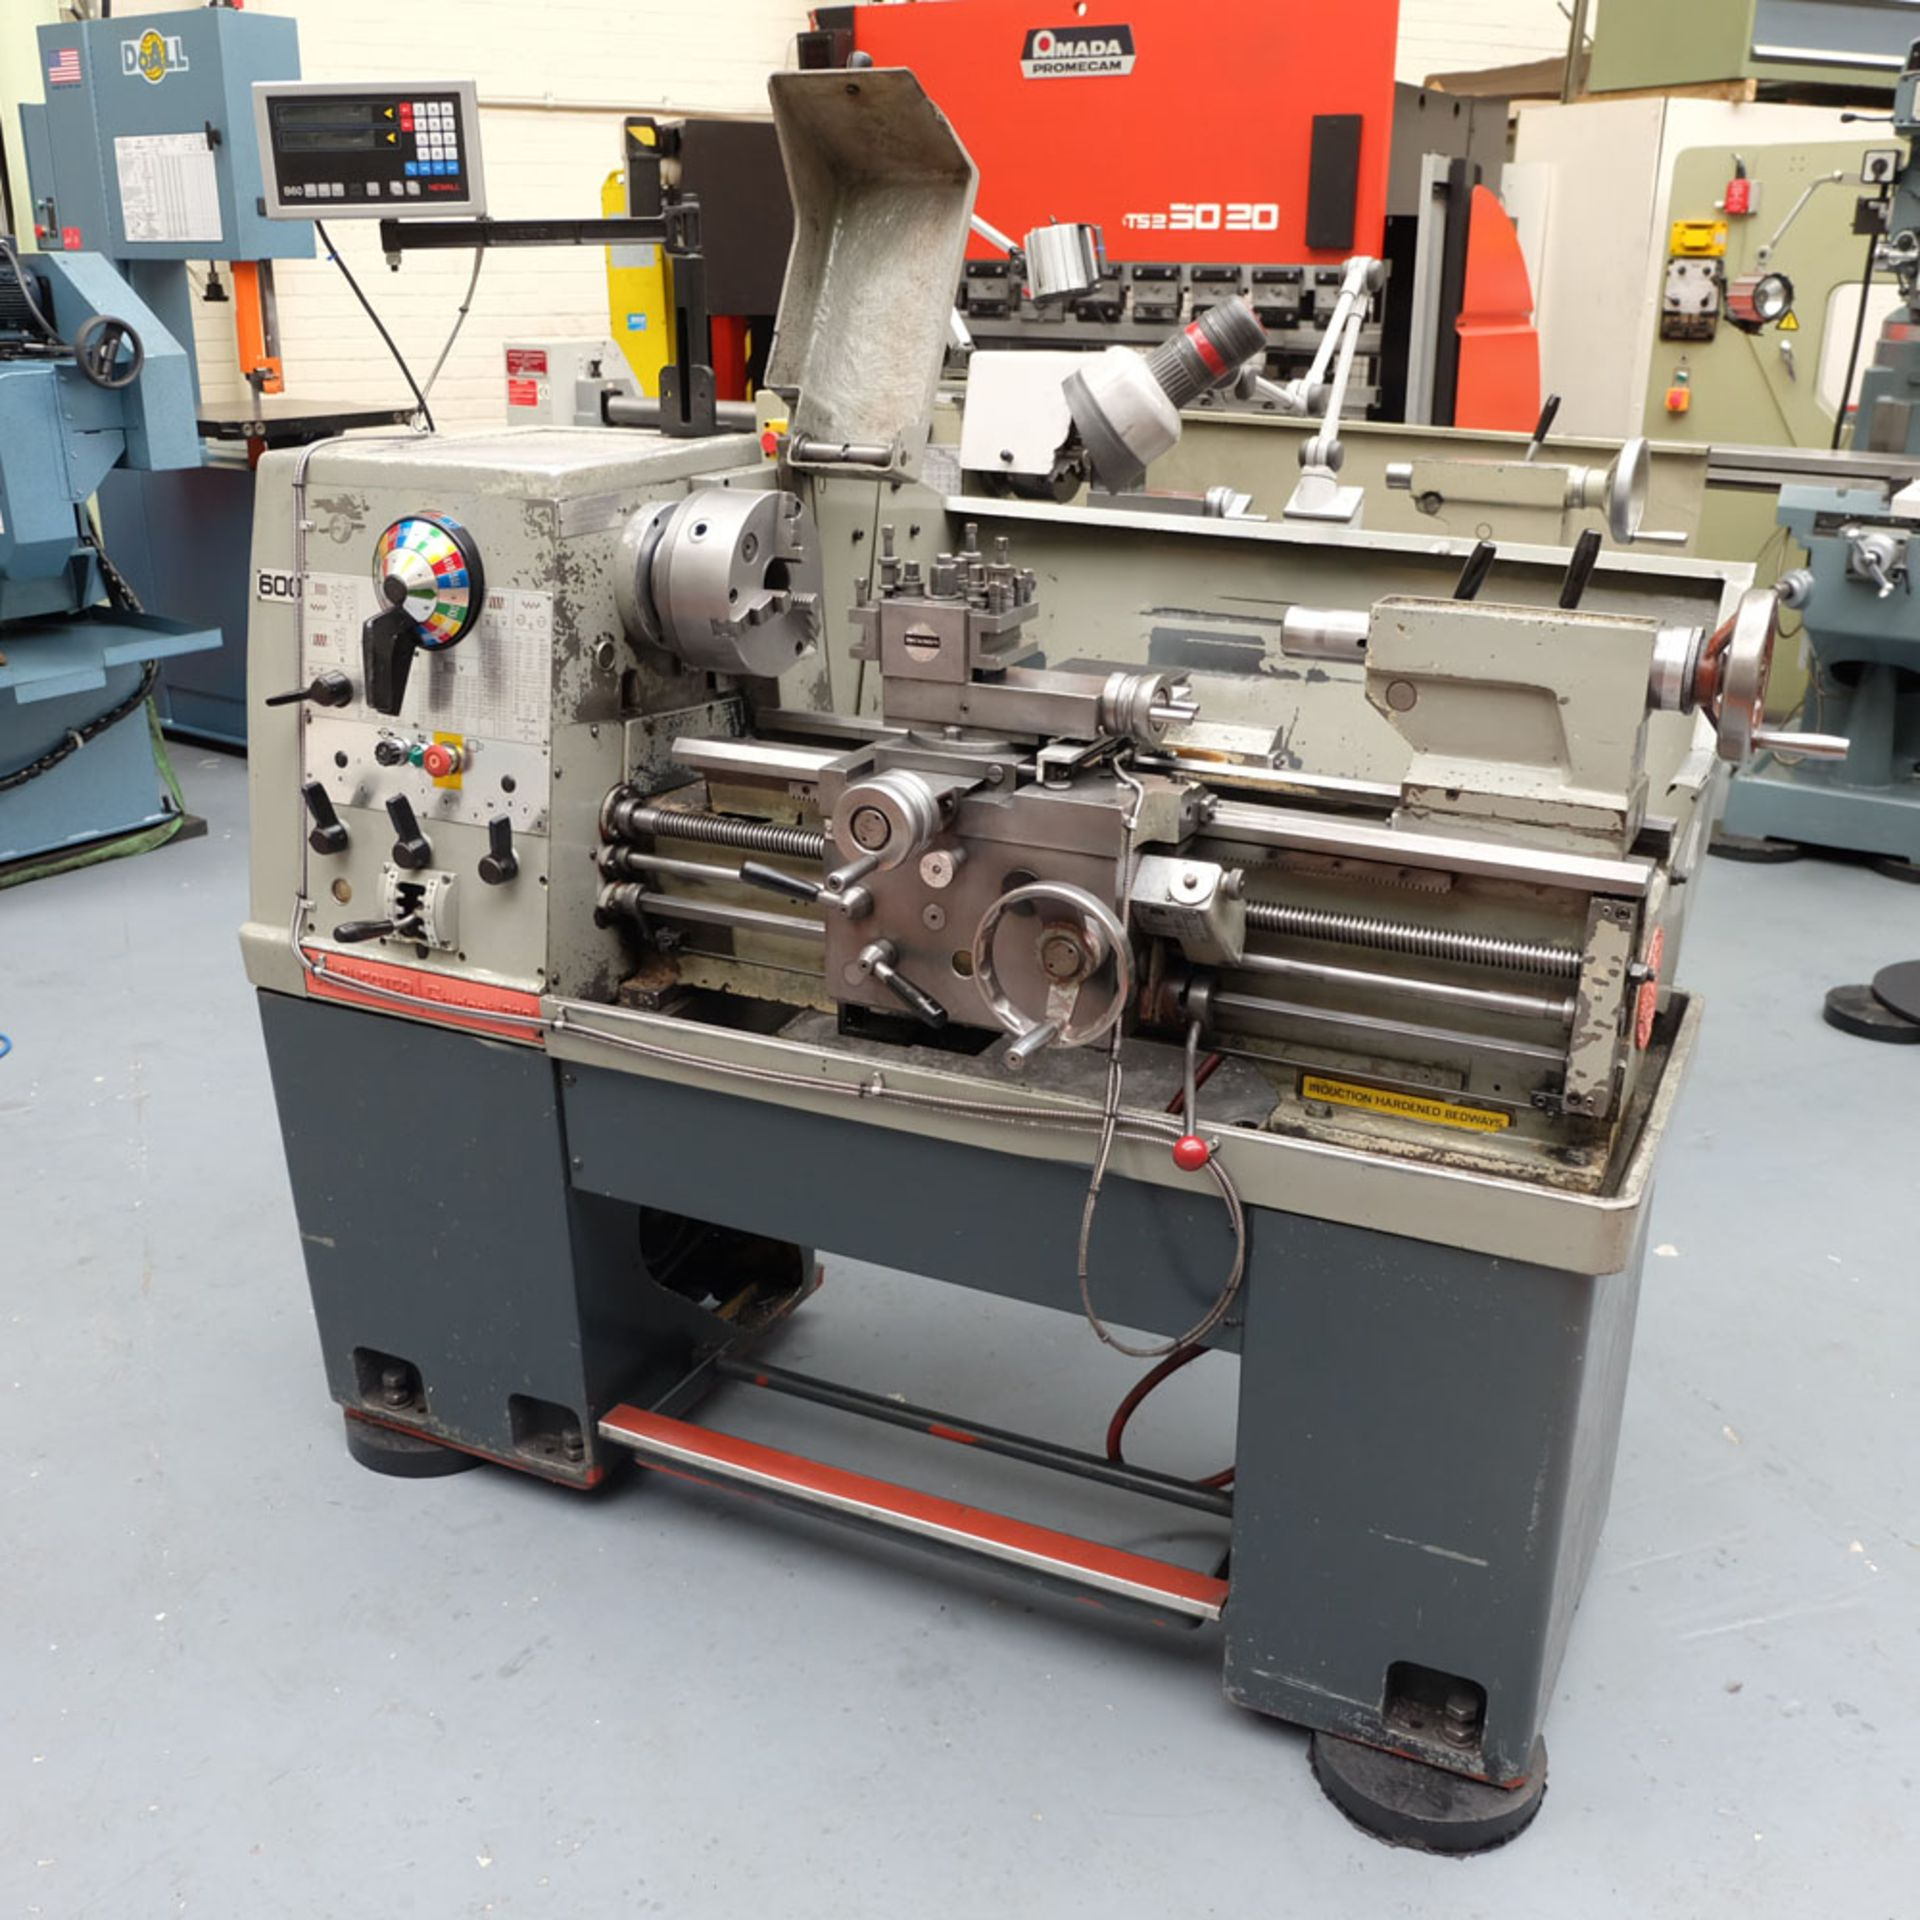 Colchester Student 1800 Gap Bed Centre Lathe. - Image 2 of 8